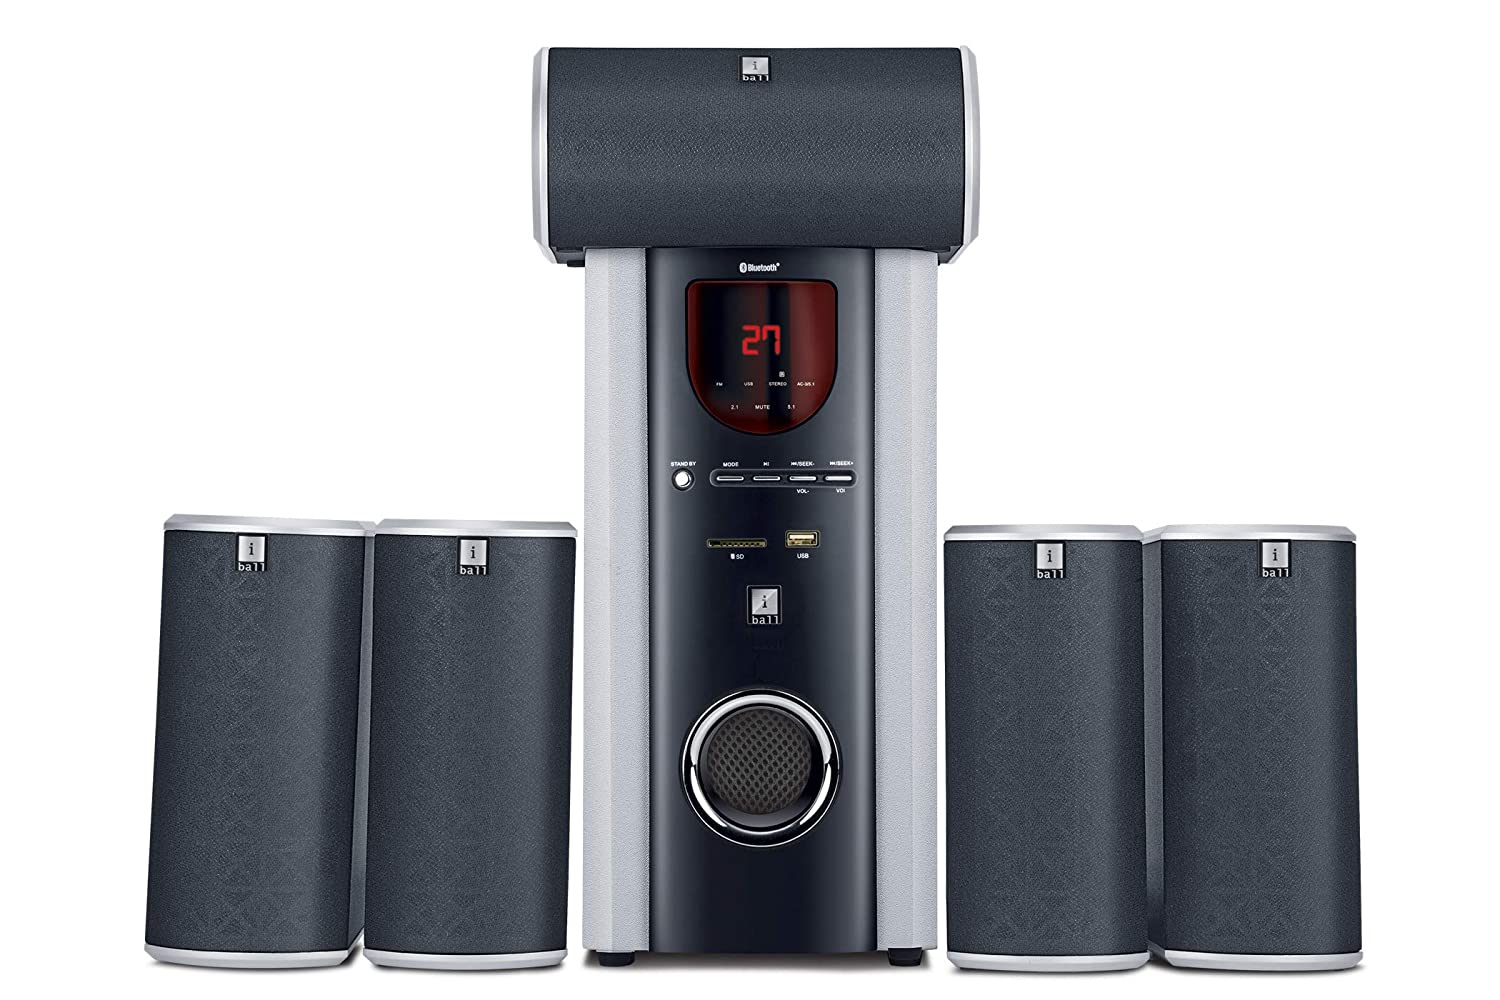 iBall Booster BTH - 5.1 Channel Multimedia Bluetooth Speakers, Black